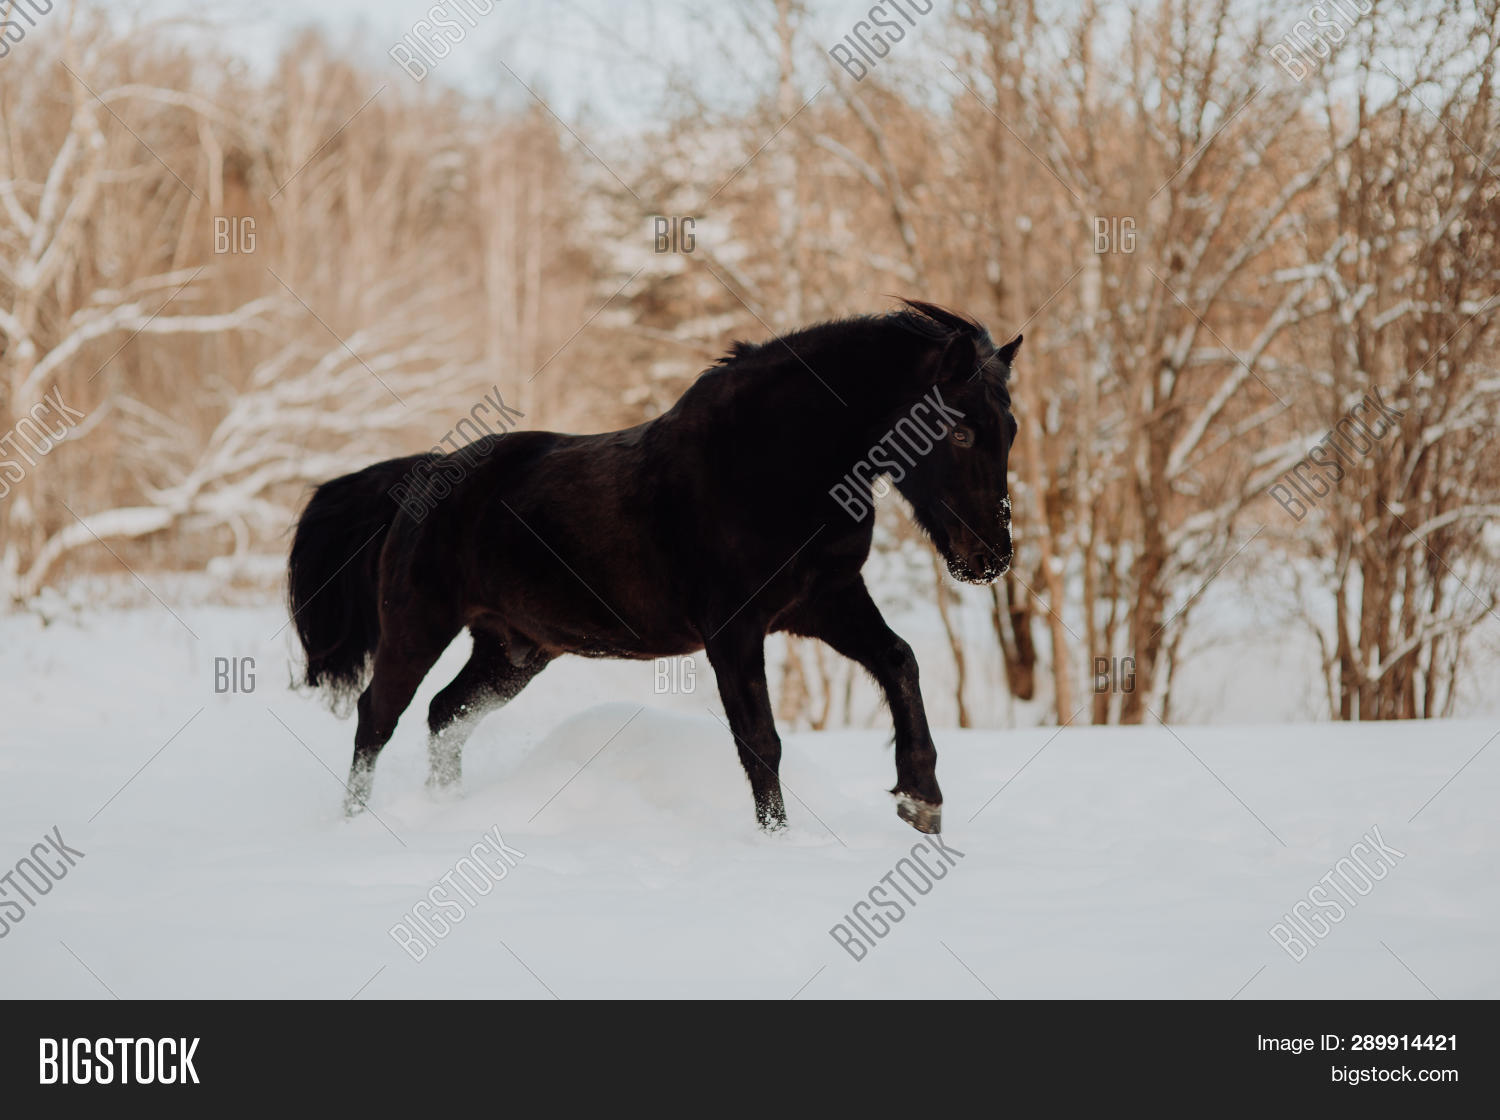 Black Horse Runs Image Photo Free Trial Bigstock